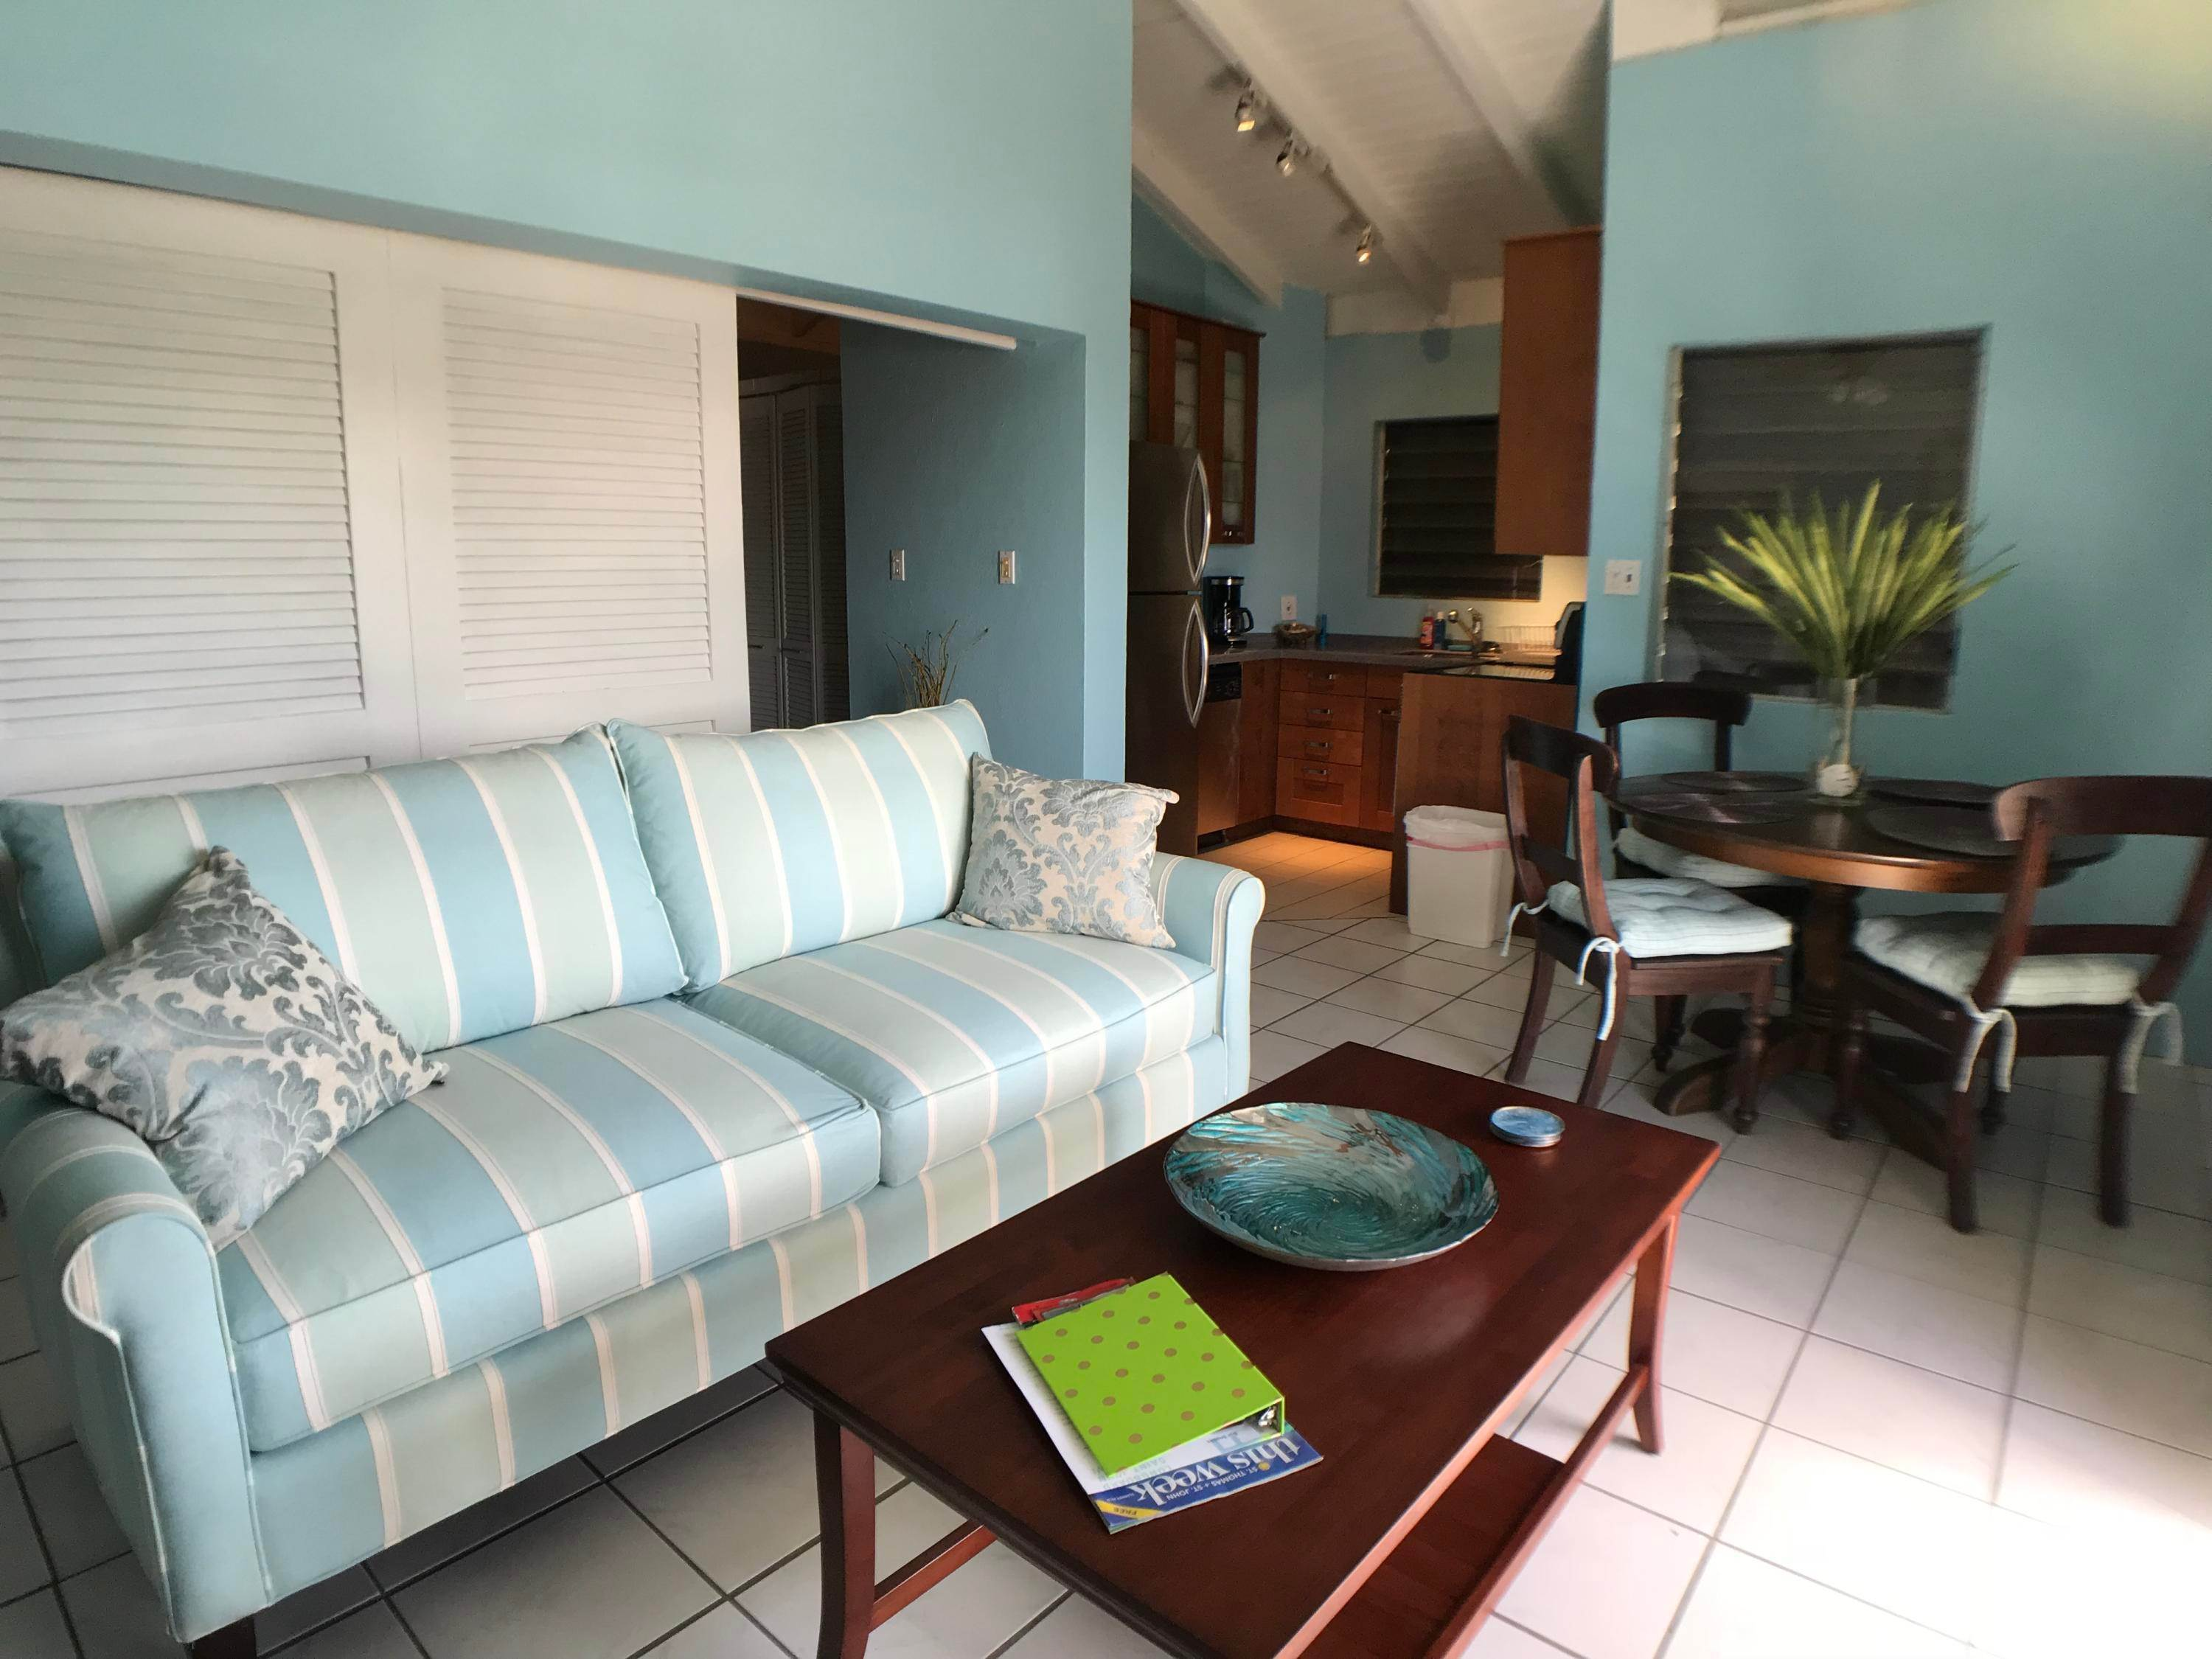 Condominiums for Sale at Enighed St John, Virgin Islands 00830 United States Virgin Islands